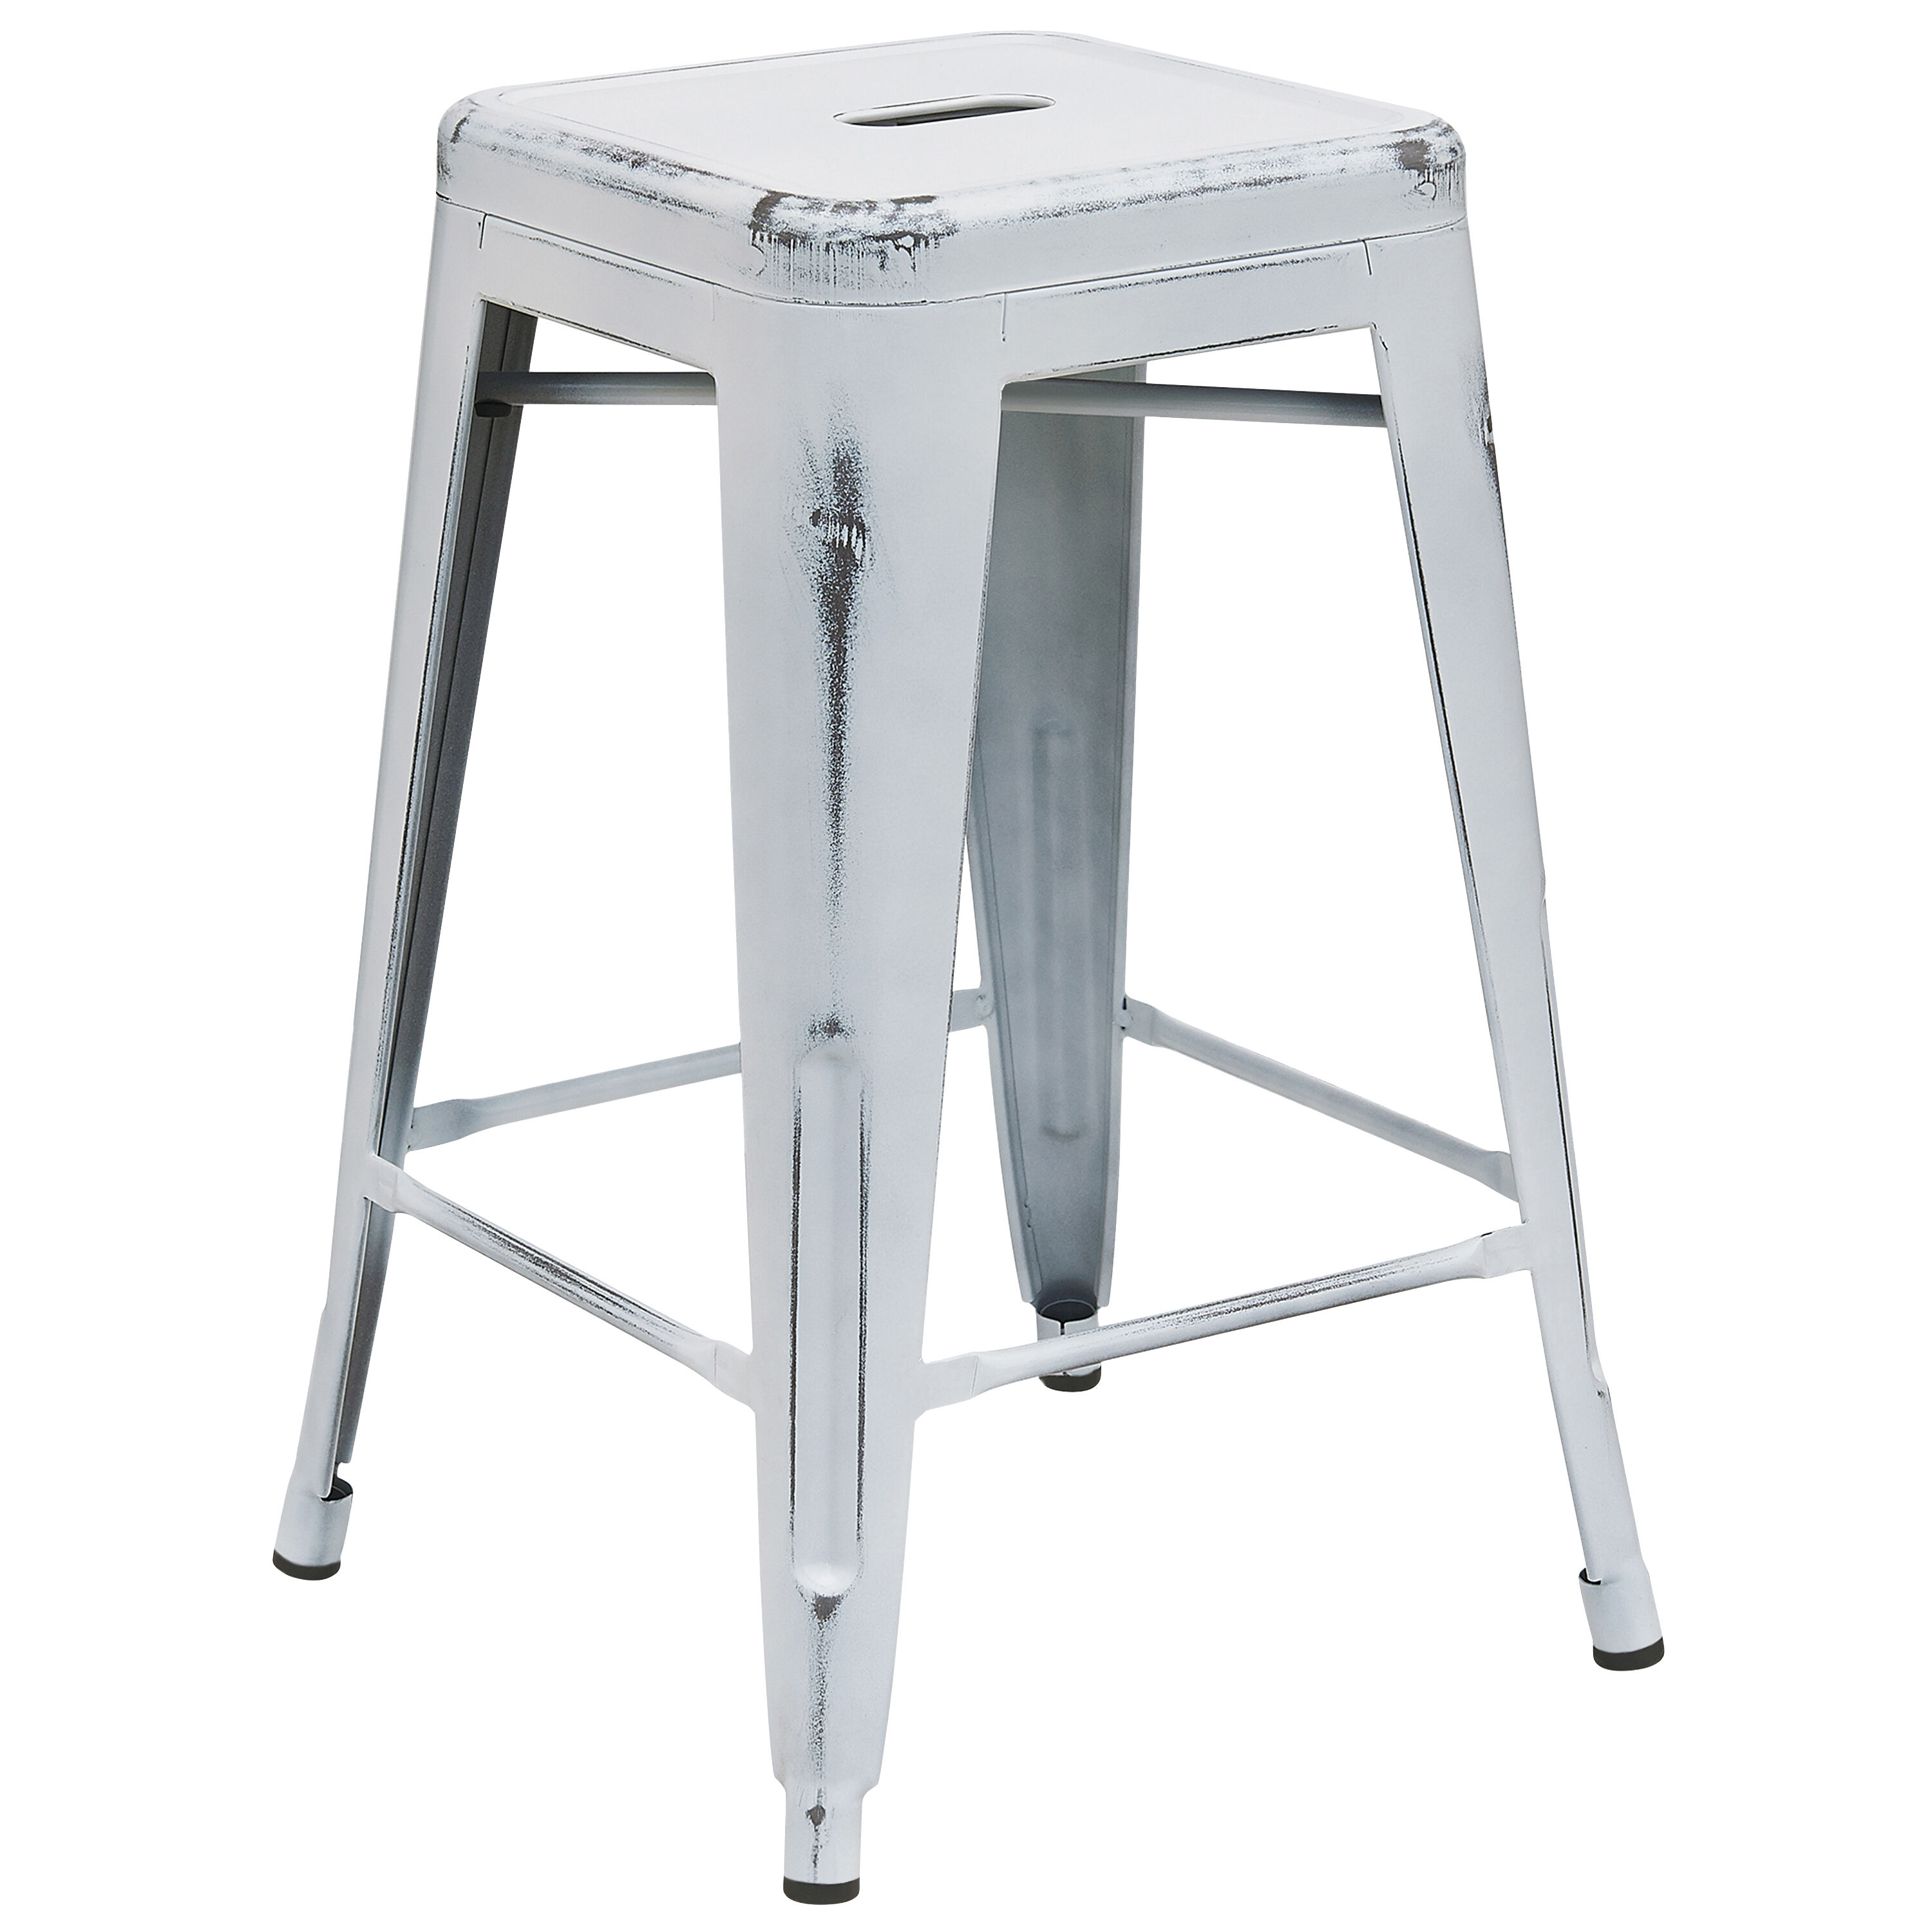 Flash Furniture 24u0027u0027 High Backless Distressed White Metal Indoor Outdoor  Counter Height Stool ET BT3503 24 WH GG | StackChairs4Less.com